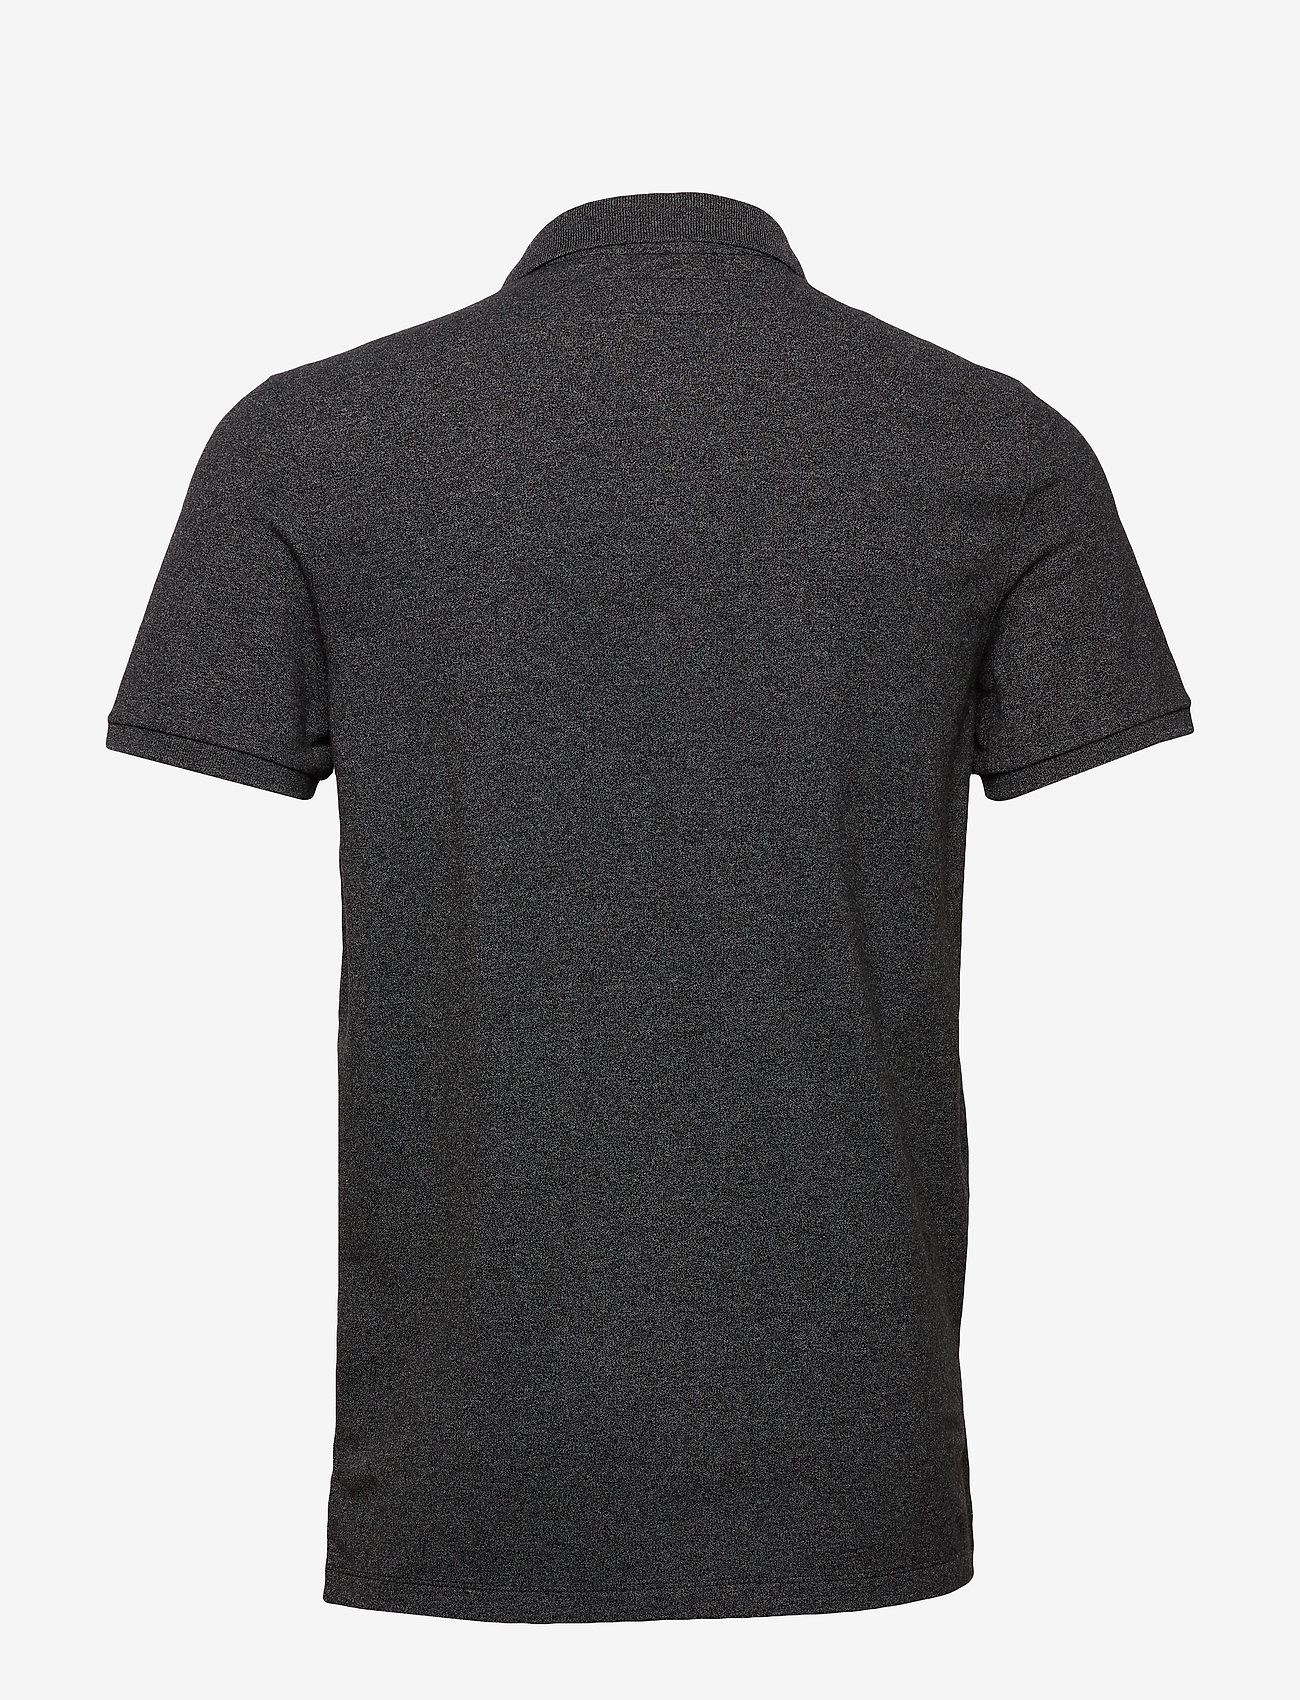 Classic Icon Stretch Polo (Black Dd) (43.40 €) - Abercrombie & Fitch pEHC8